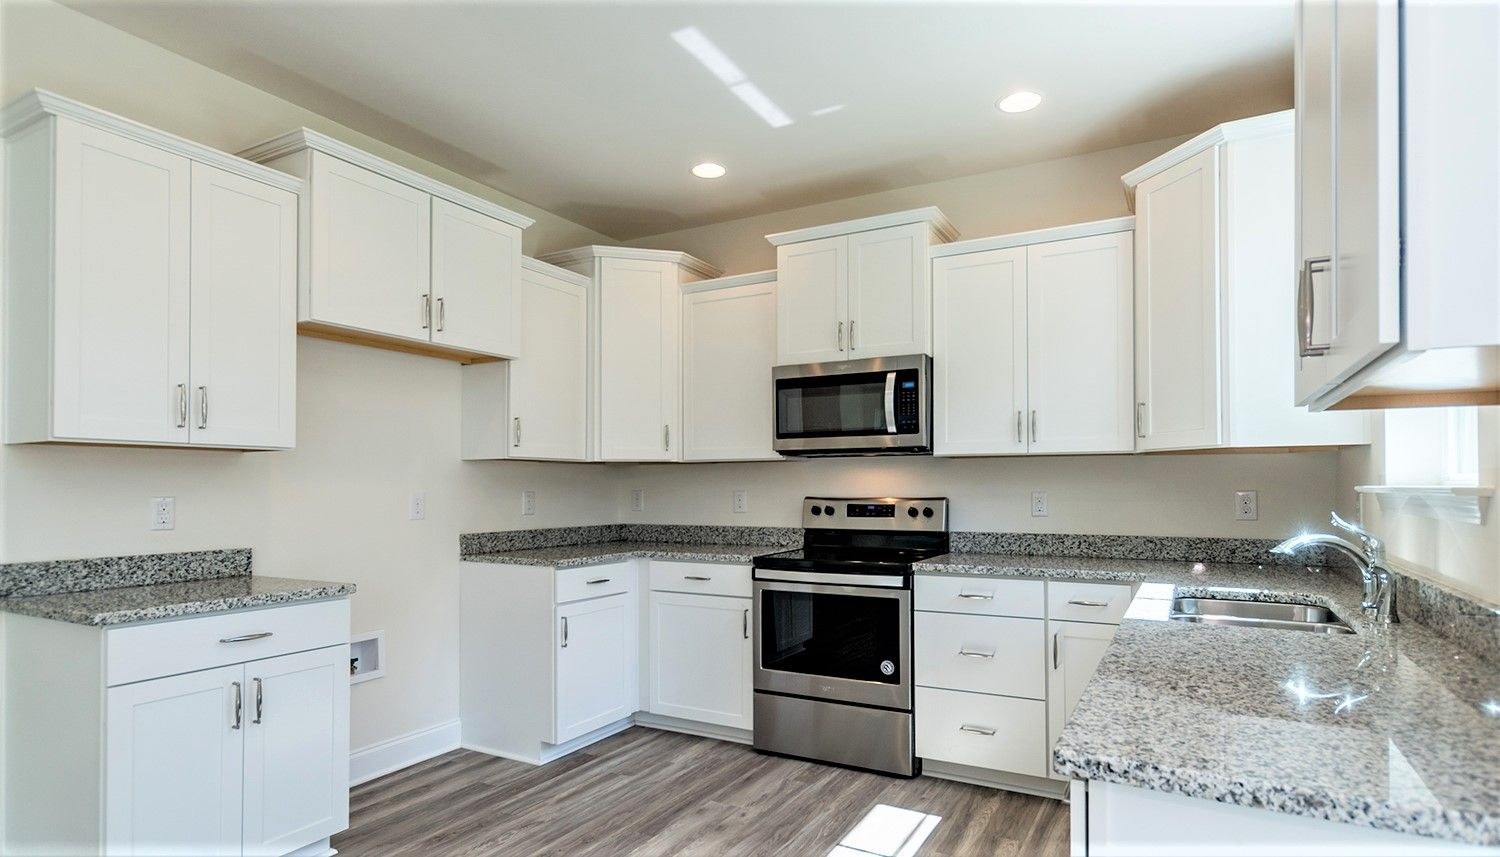 Kitchen featured in the Bordeaux By Dan Ryan Builders in Raleigh-Durham-Chapel Hill, NC